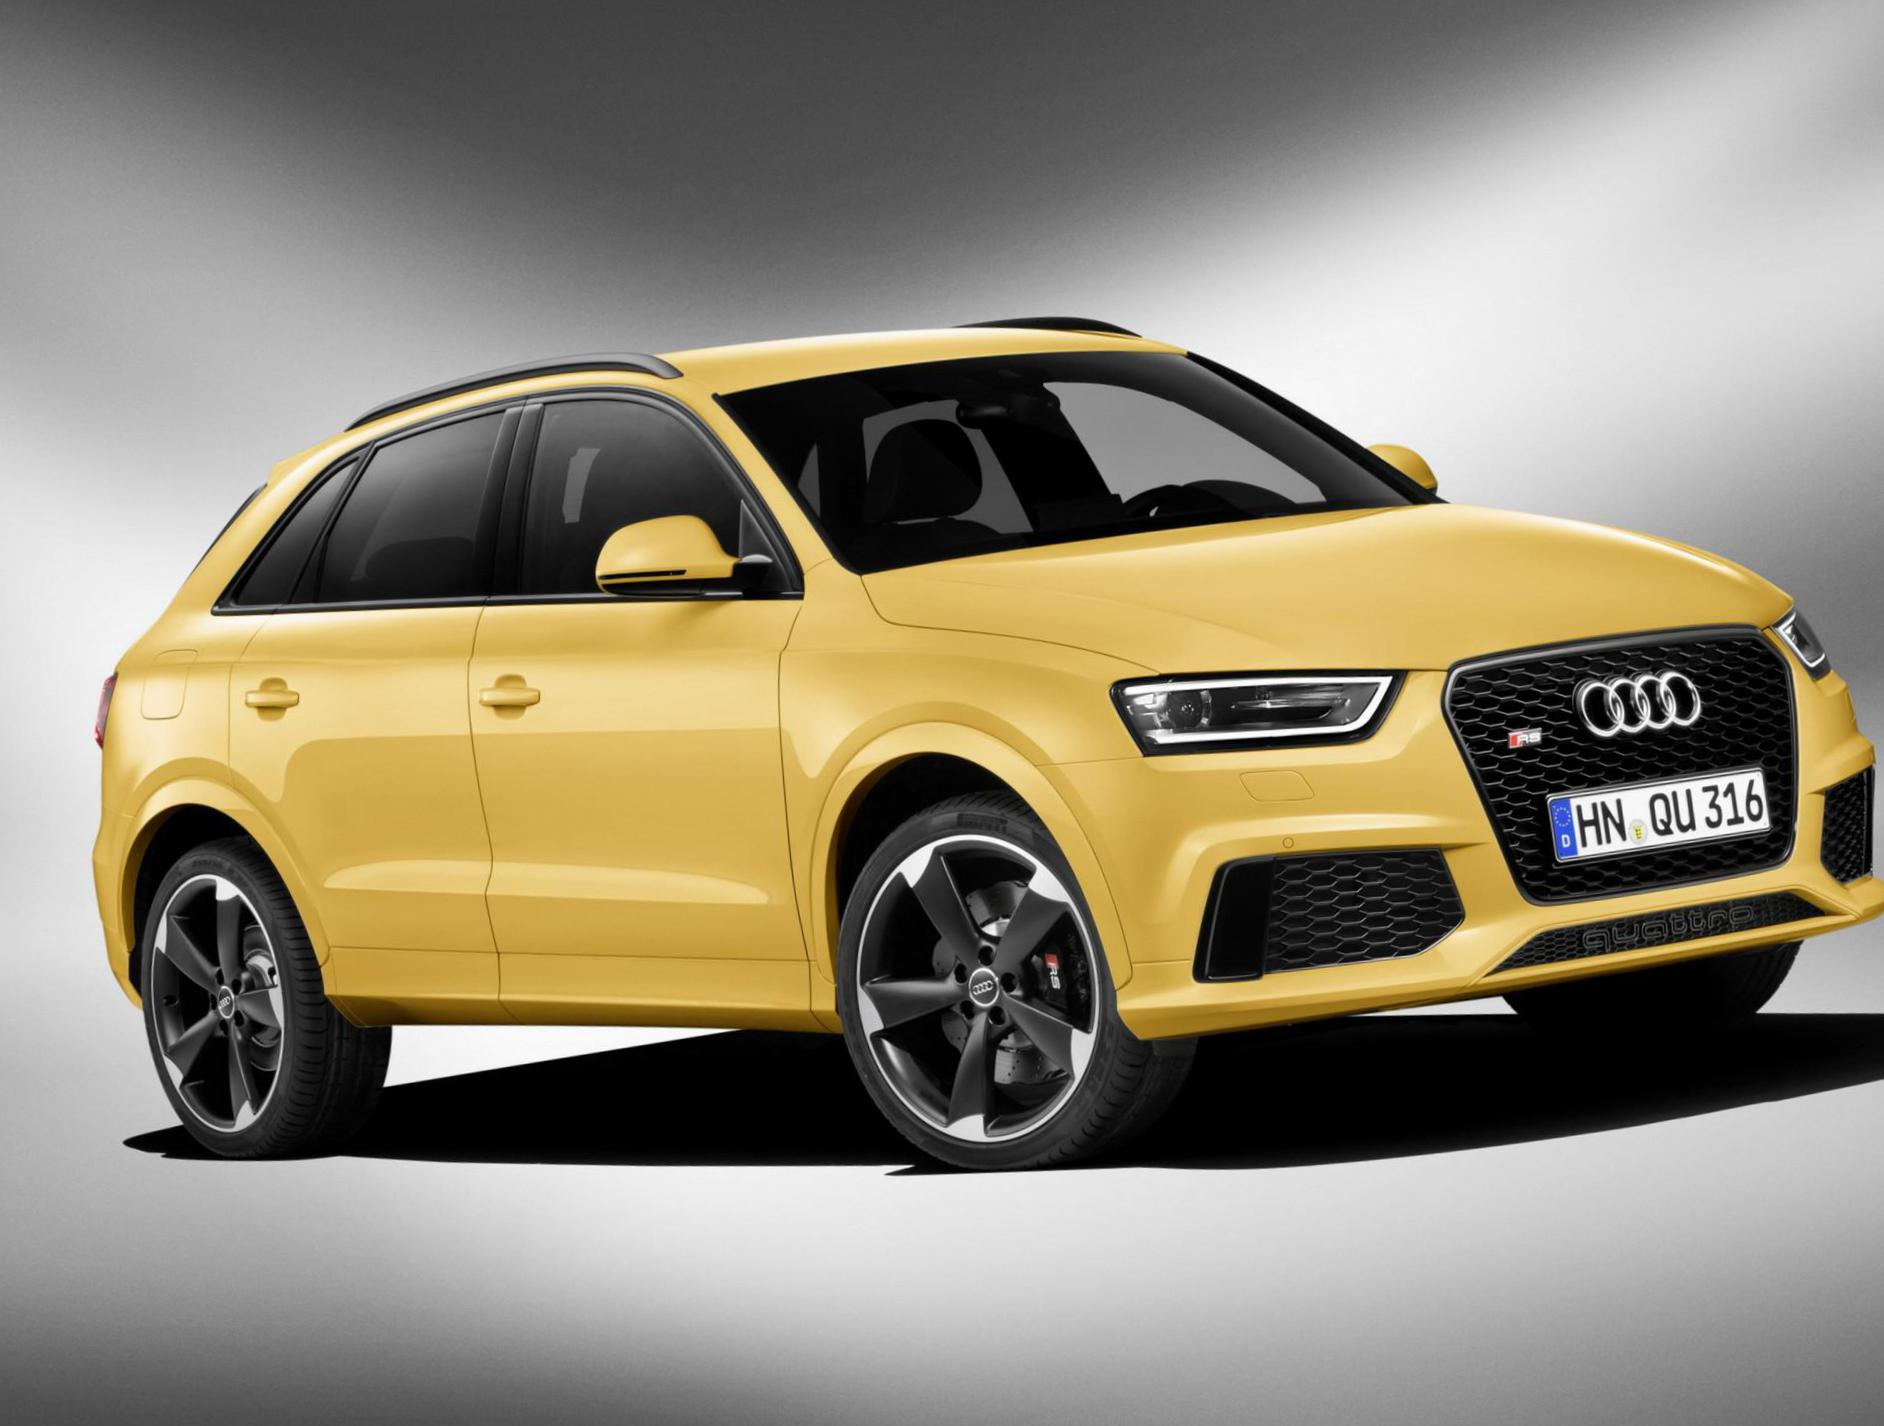 Audi RS Q3 parts hatchback